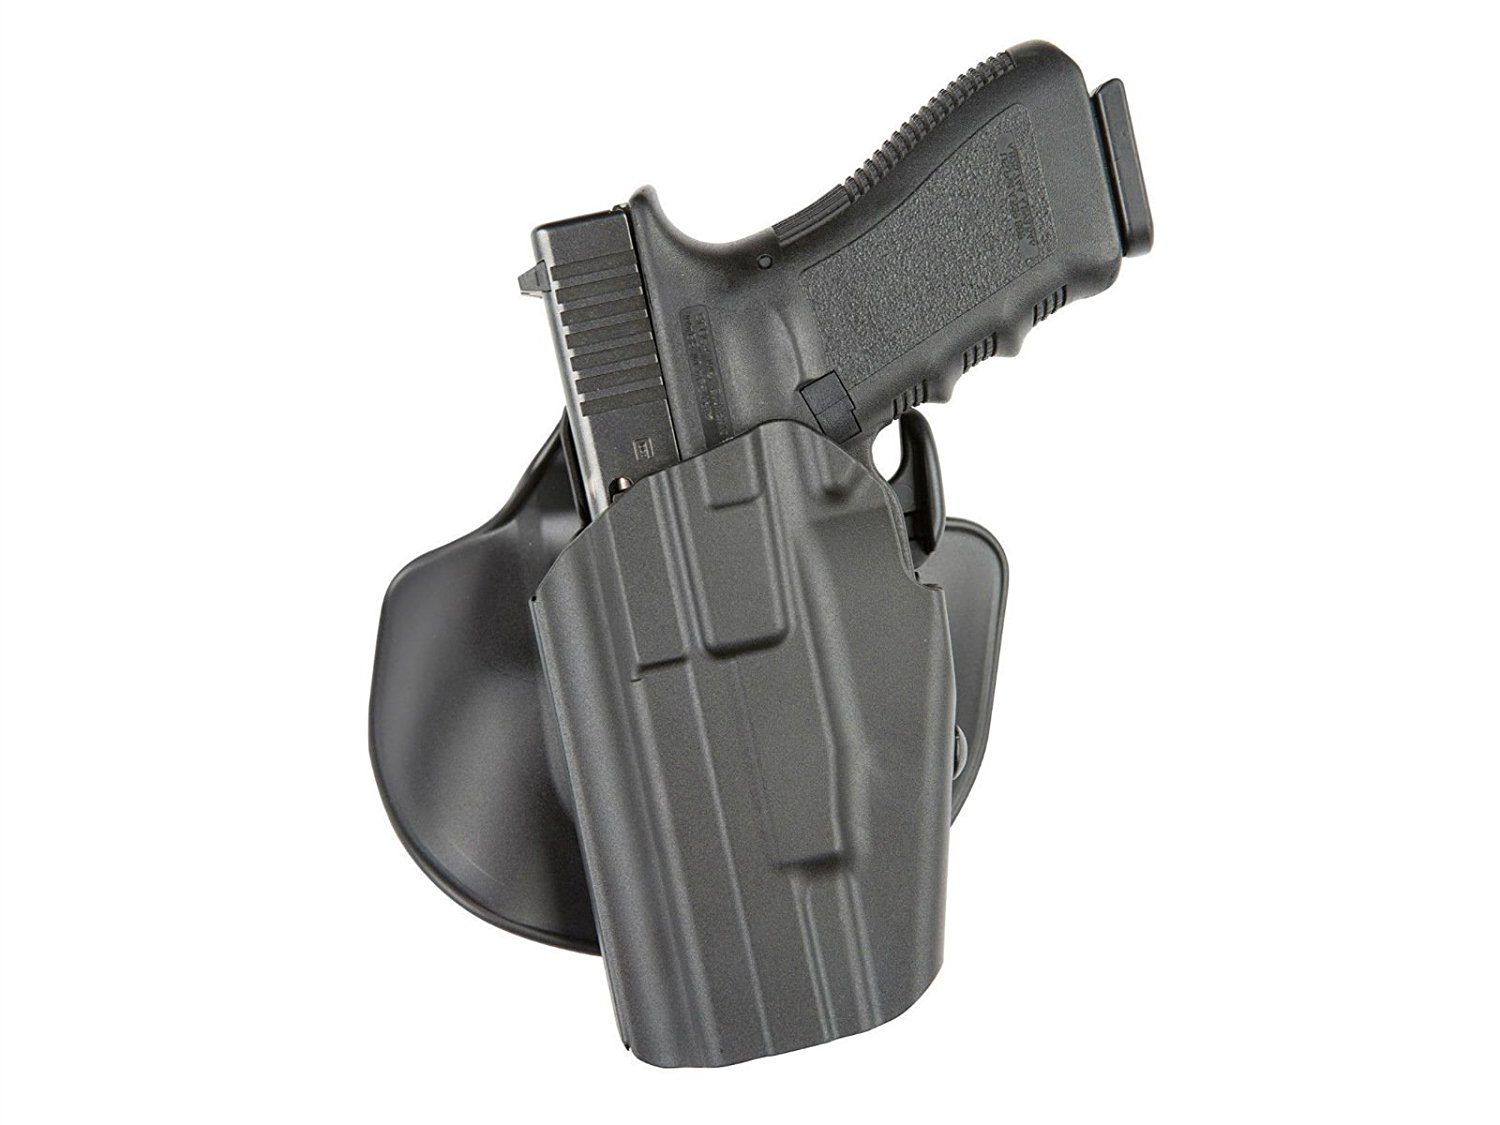 image of 578 GLS Pro-Fit Holster by Safariland, Rogers, and Ultimate Arms Gear with gun